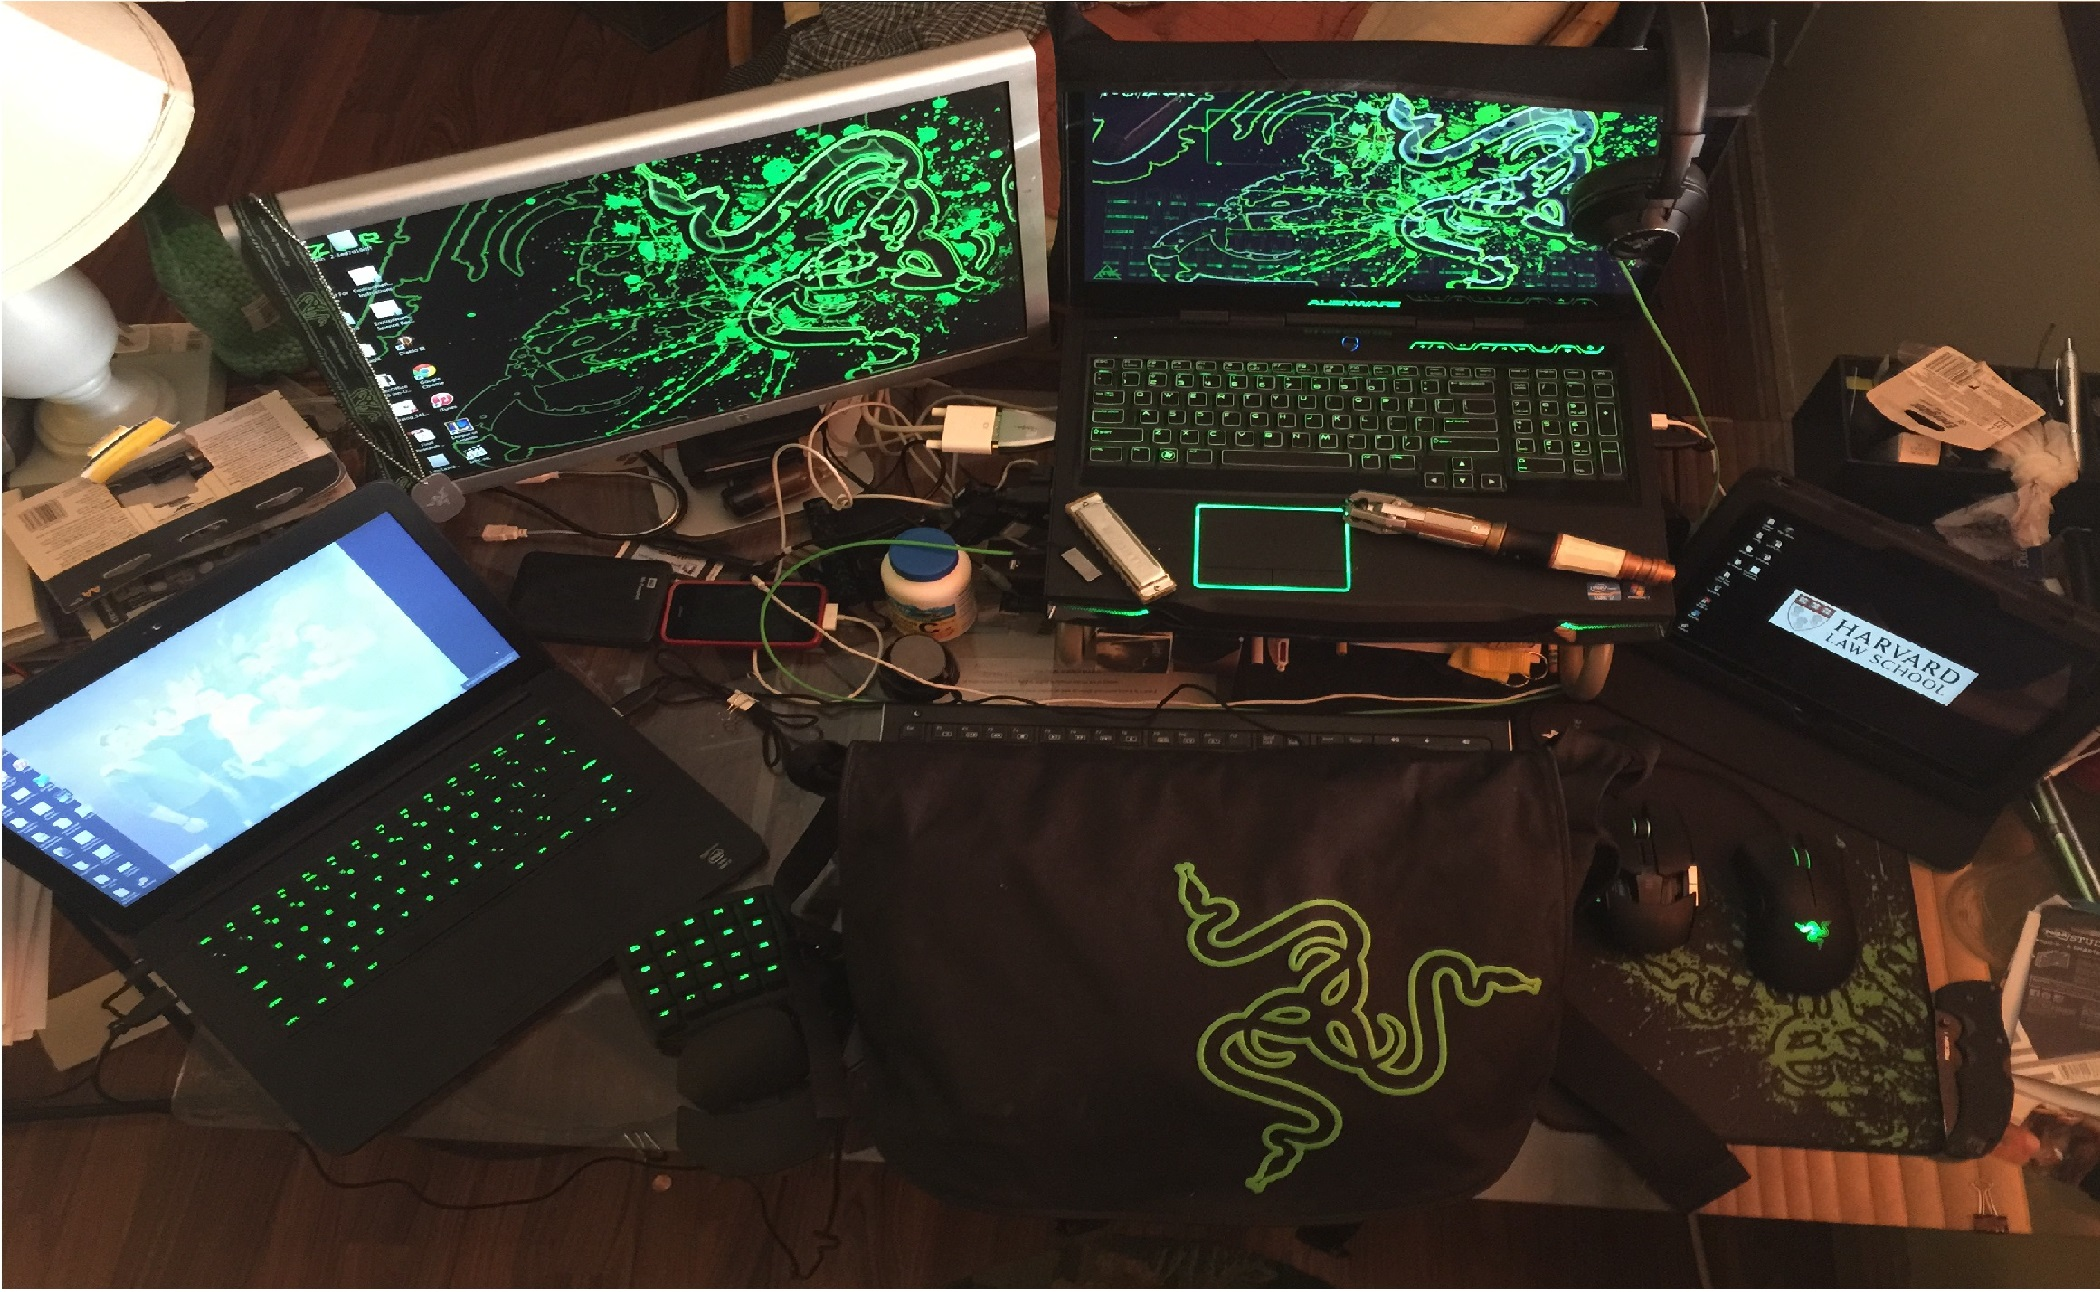 Contest Over Insider Giveaway Win A Razer Metallic